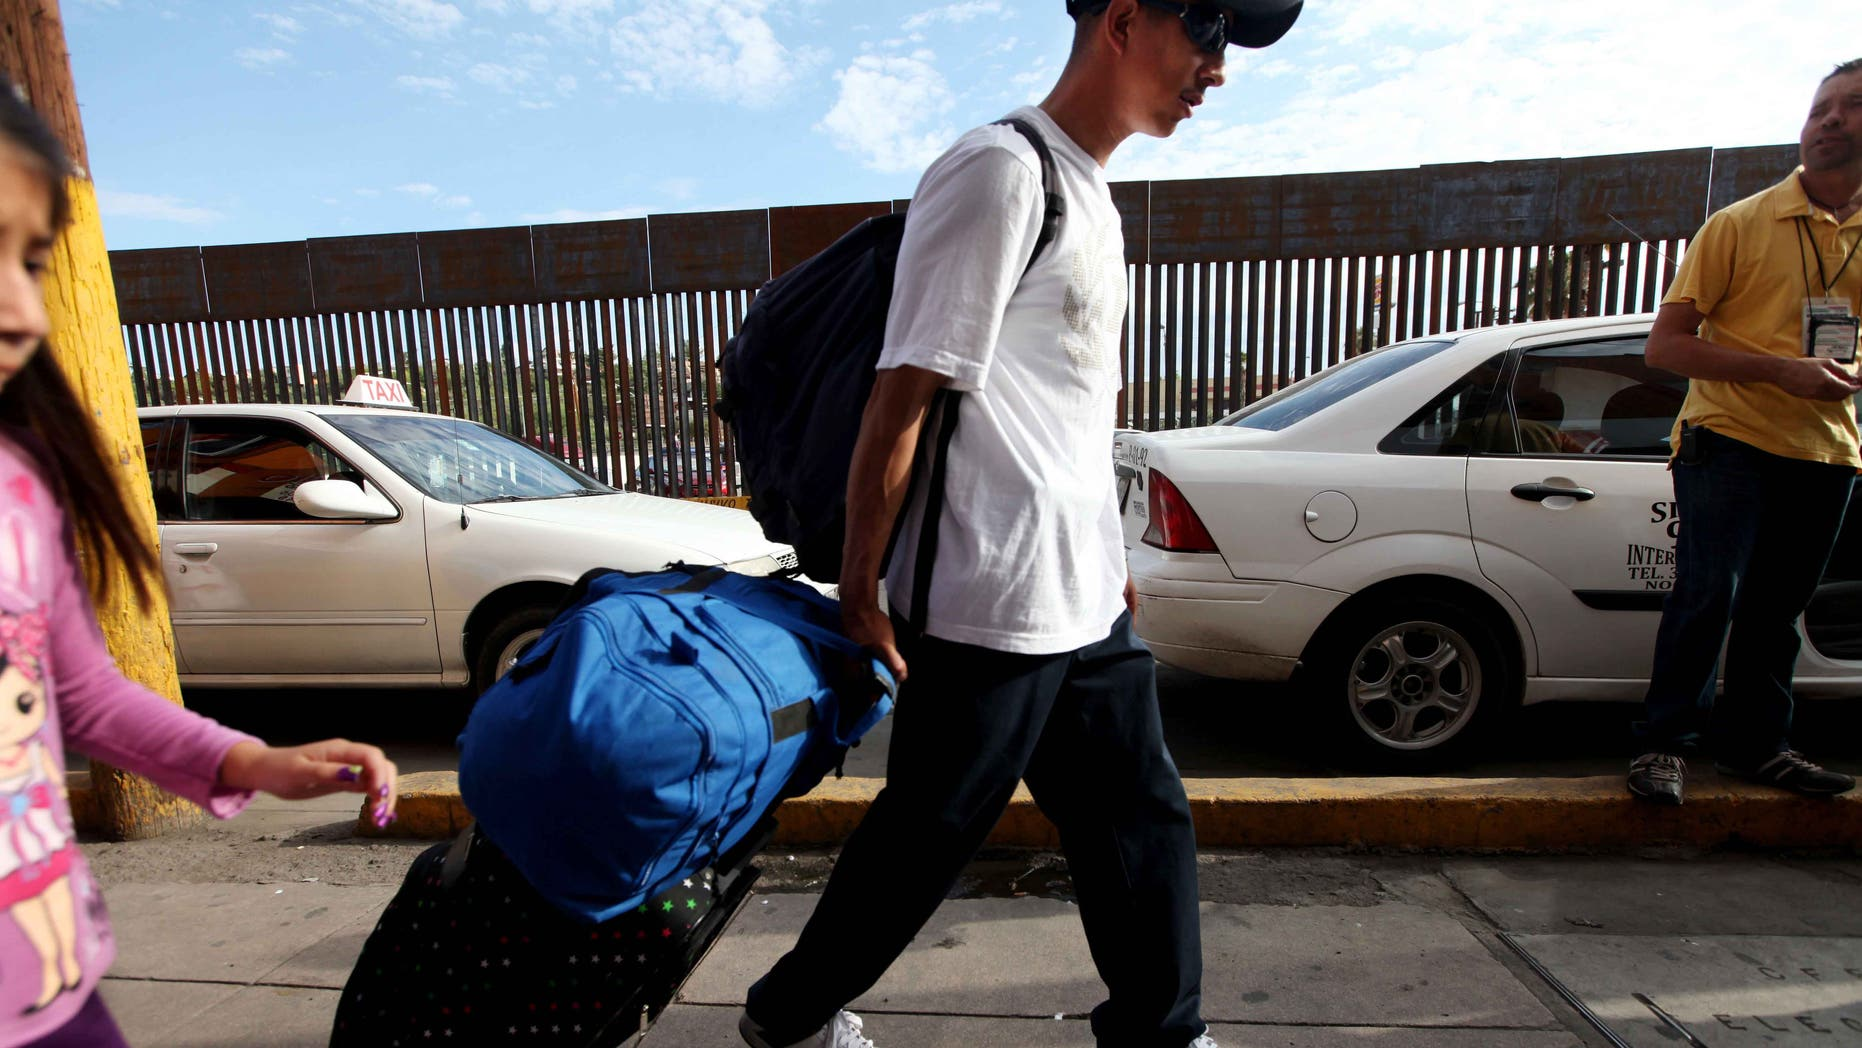 NOGALES, MEXICO - JULY 7:  A mexican national carts his luggage towards the U.S-Mexico border on July 7, 2012 in Nogales, Mexico. The president-elect of Mexico, Enrique Peña Nieto, stated that he wants to expand his country's drug-war partnership with the United States but that he would not support the presence of armed American agents in Mexico.  (Photo by Sandy Huffaker/Getty Images)